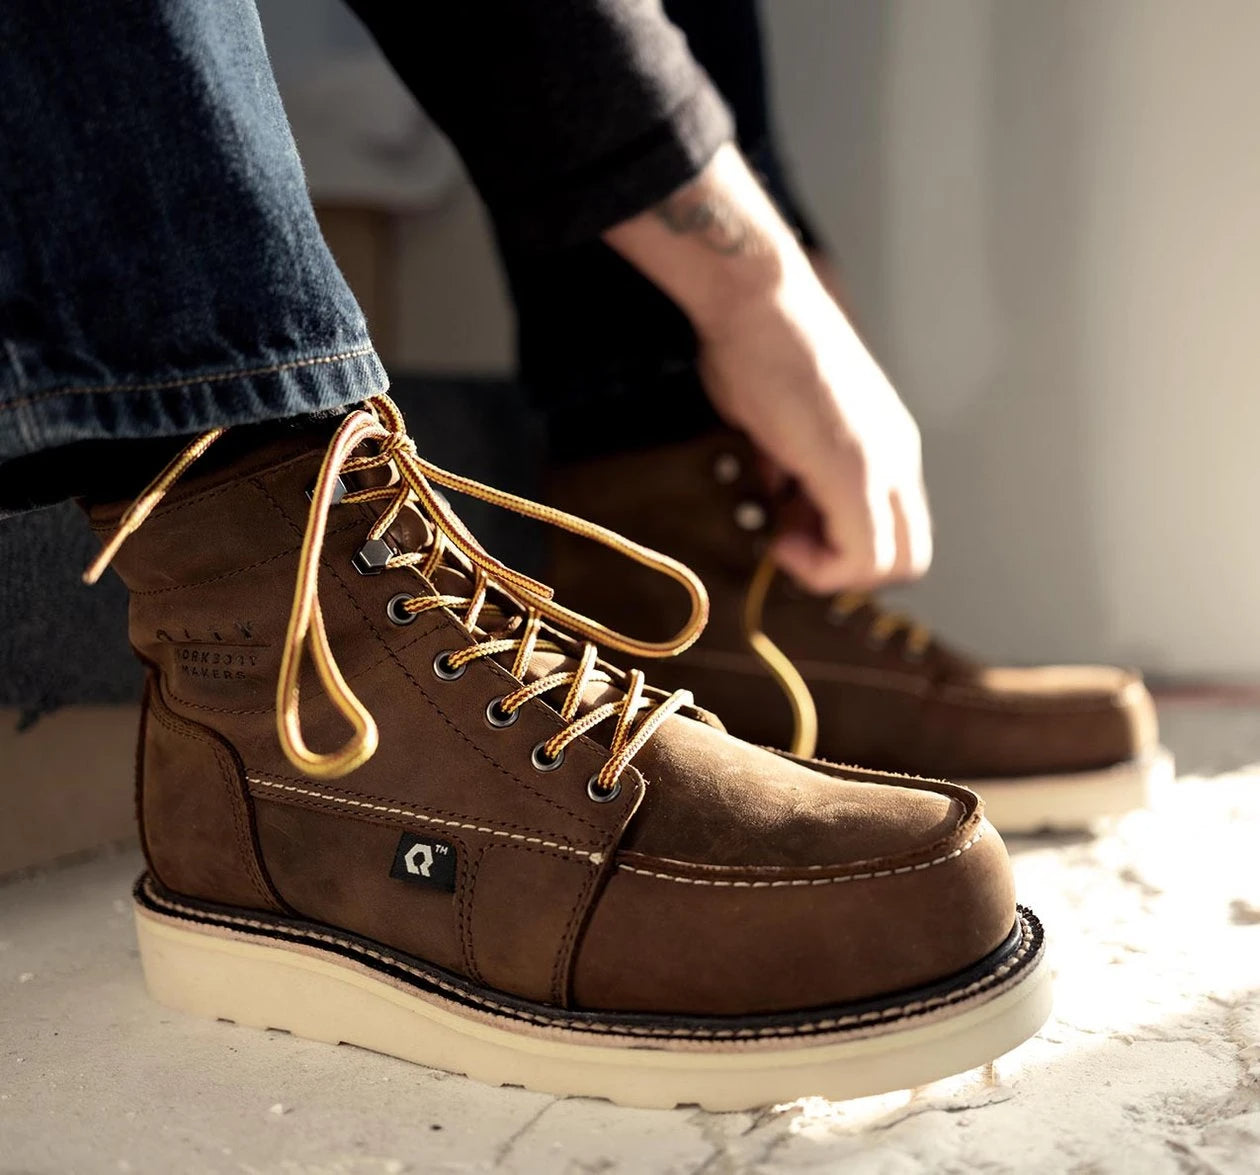 Men's moc toe work boots